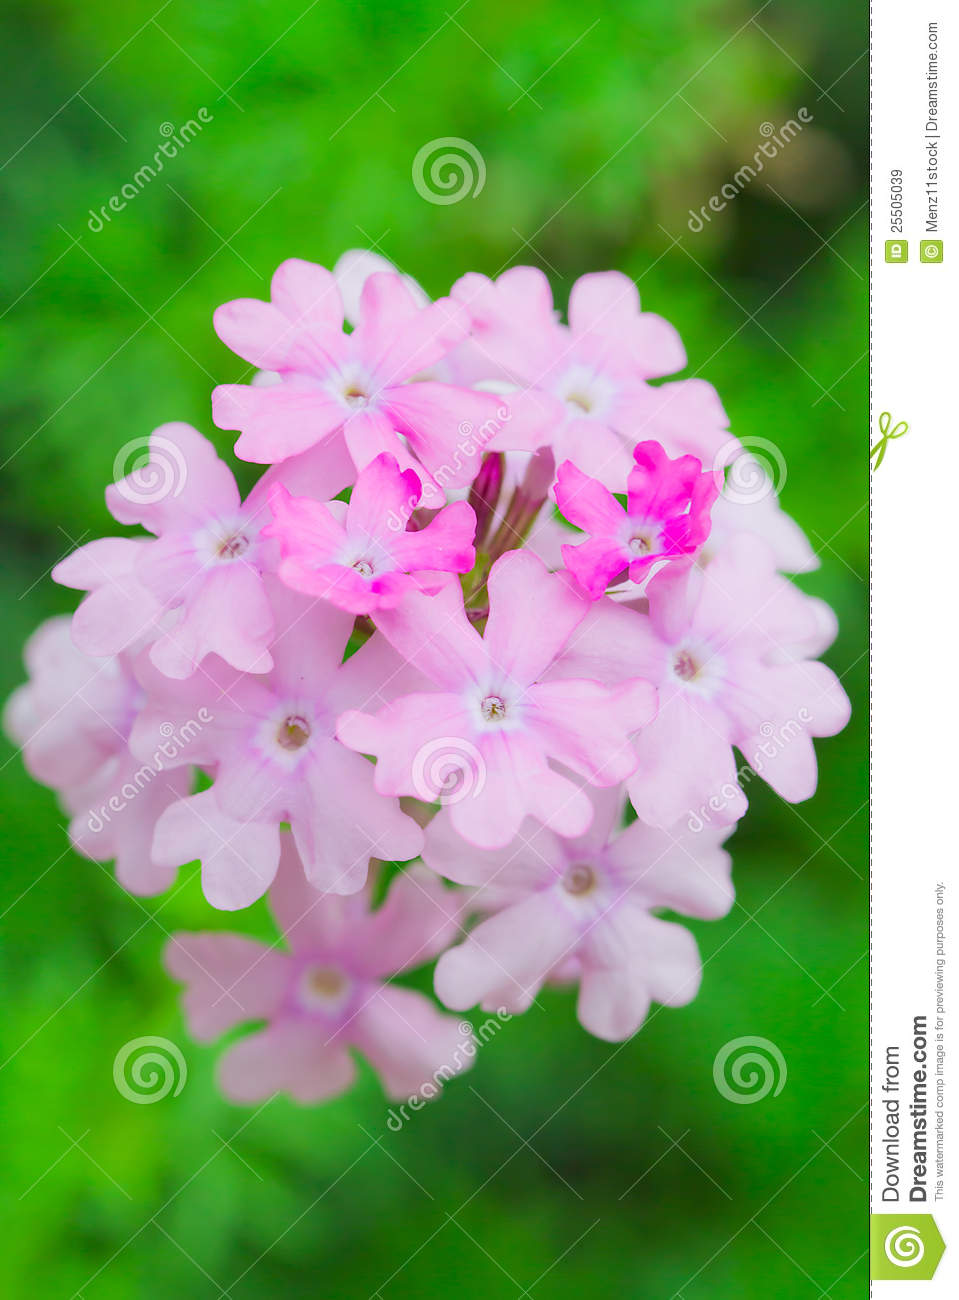 Verbena Flower Royalty Free Stock Images.